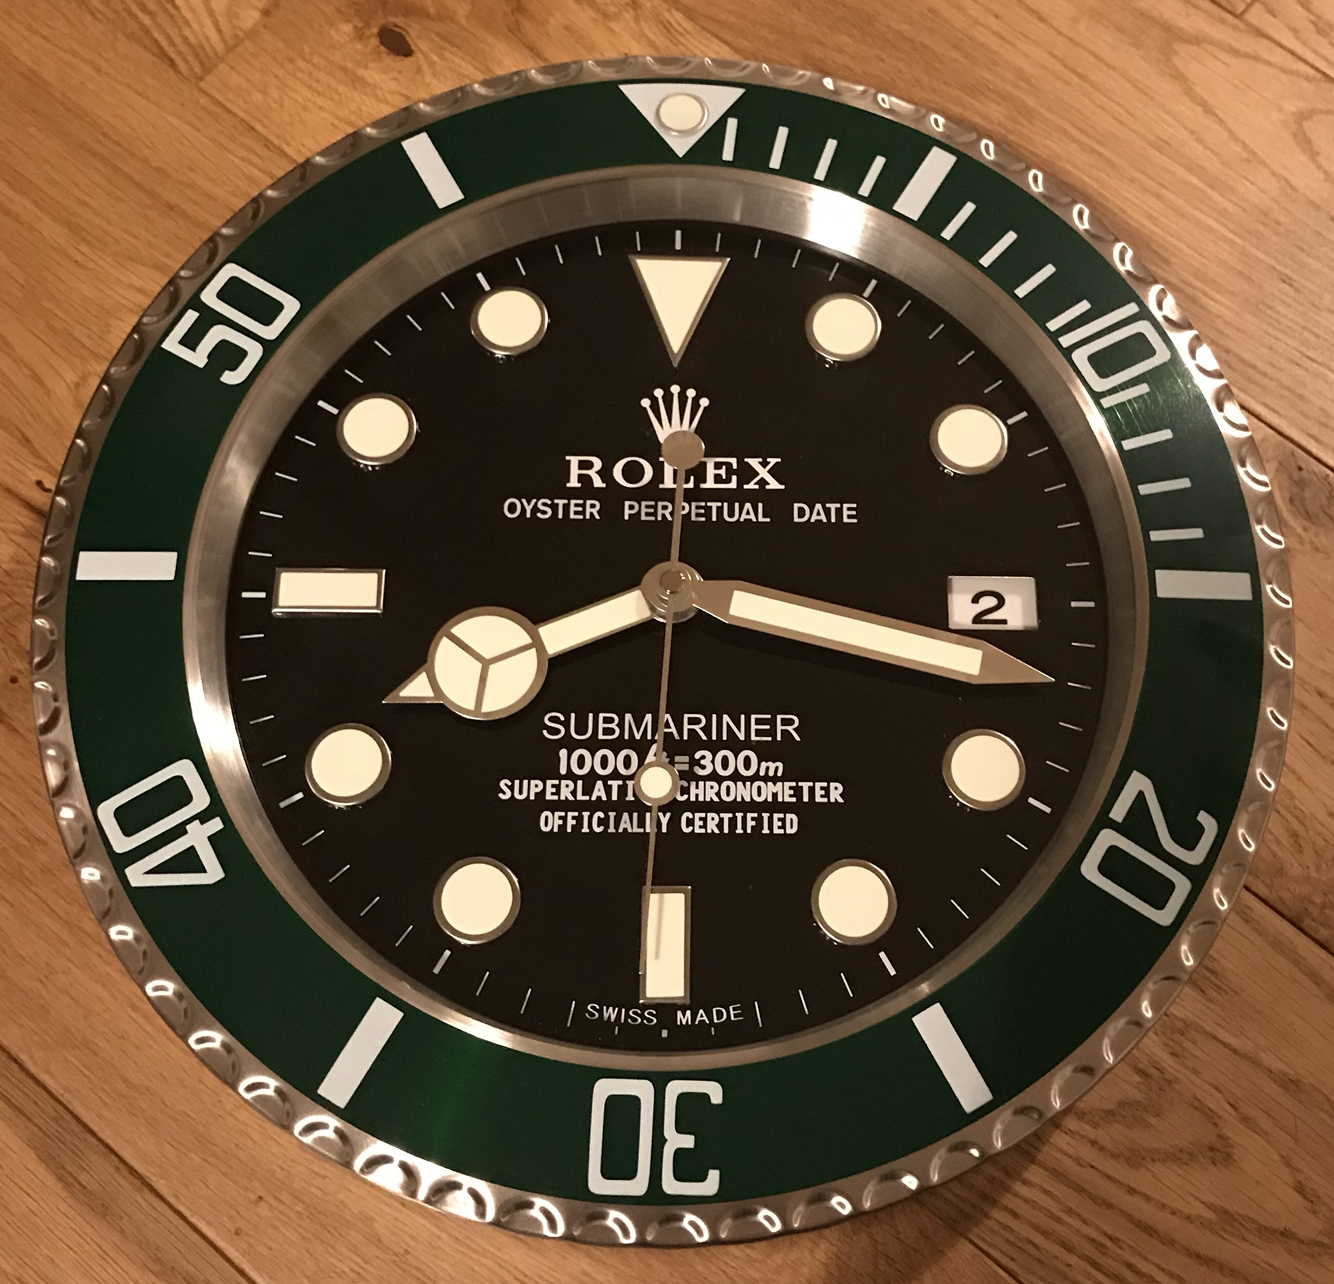 Rolex wall clocks choice image home wall decoration ideas submariner wall clock image collections home wall decoration ideas rolex wall clock for sale rolex clock amipublicfo Gallery